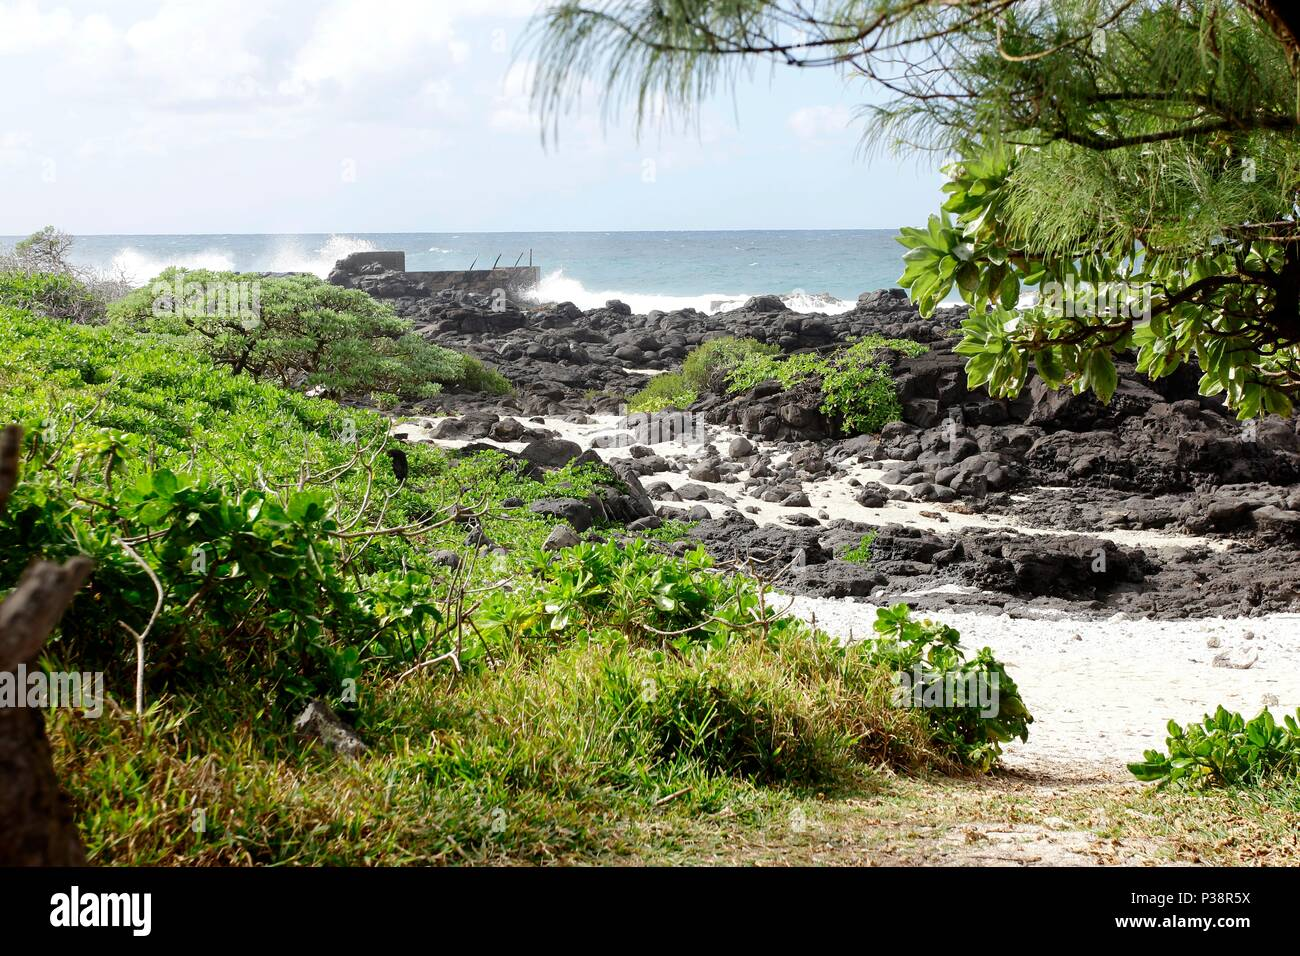 La Cambuse Beach is located near the village of Mon Desert, in the southeast part of Mauritius. This is one of the many beaches of Mauritius situated Stock Photo